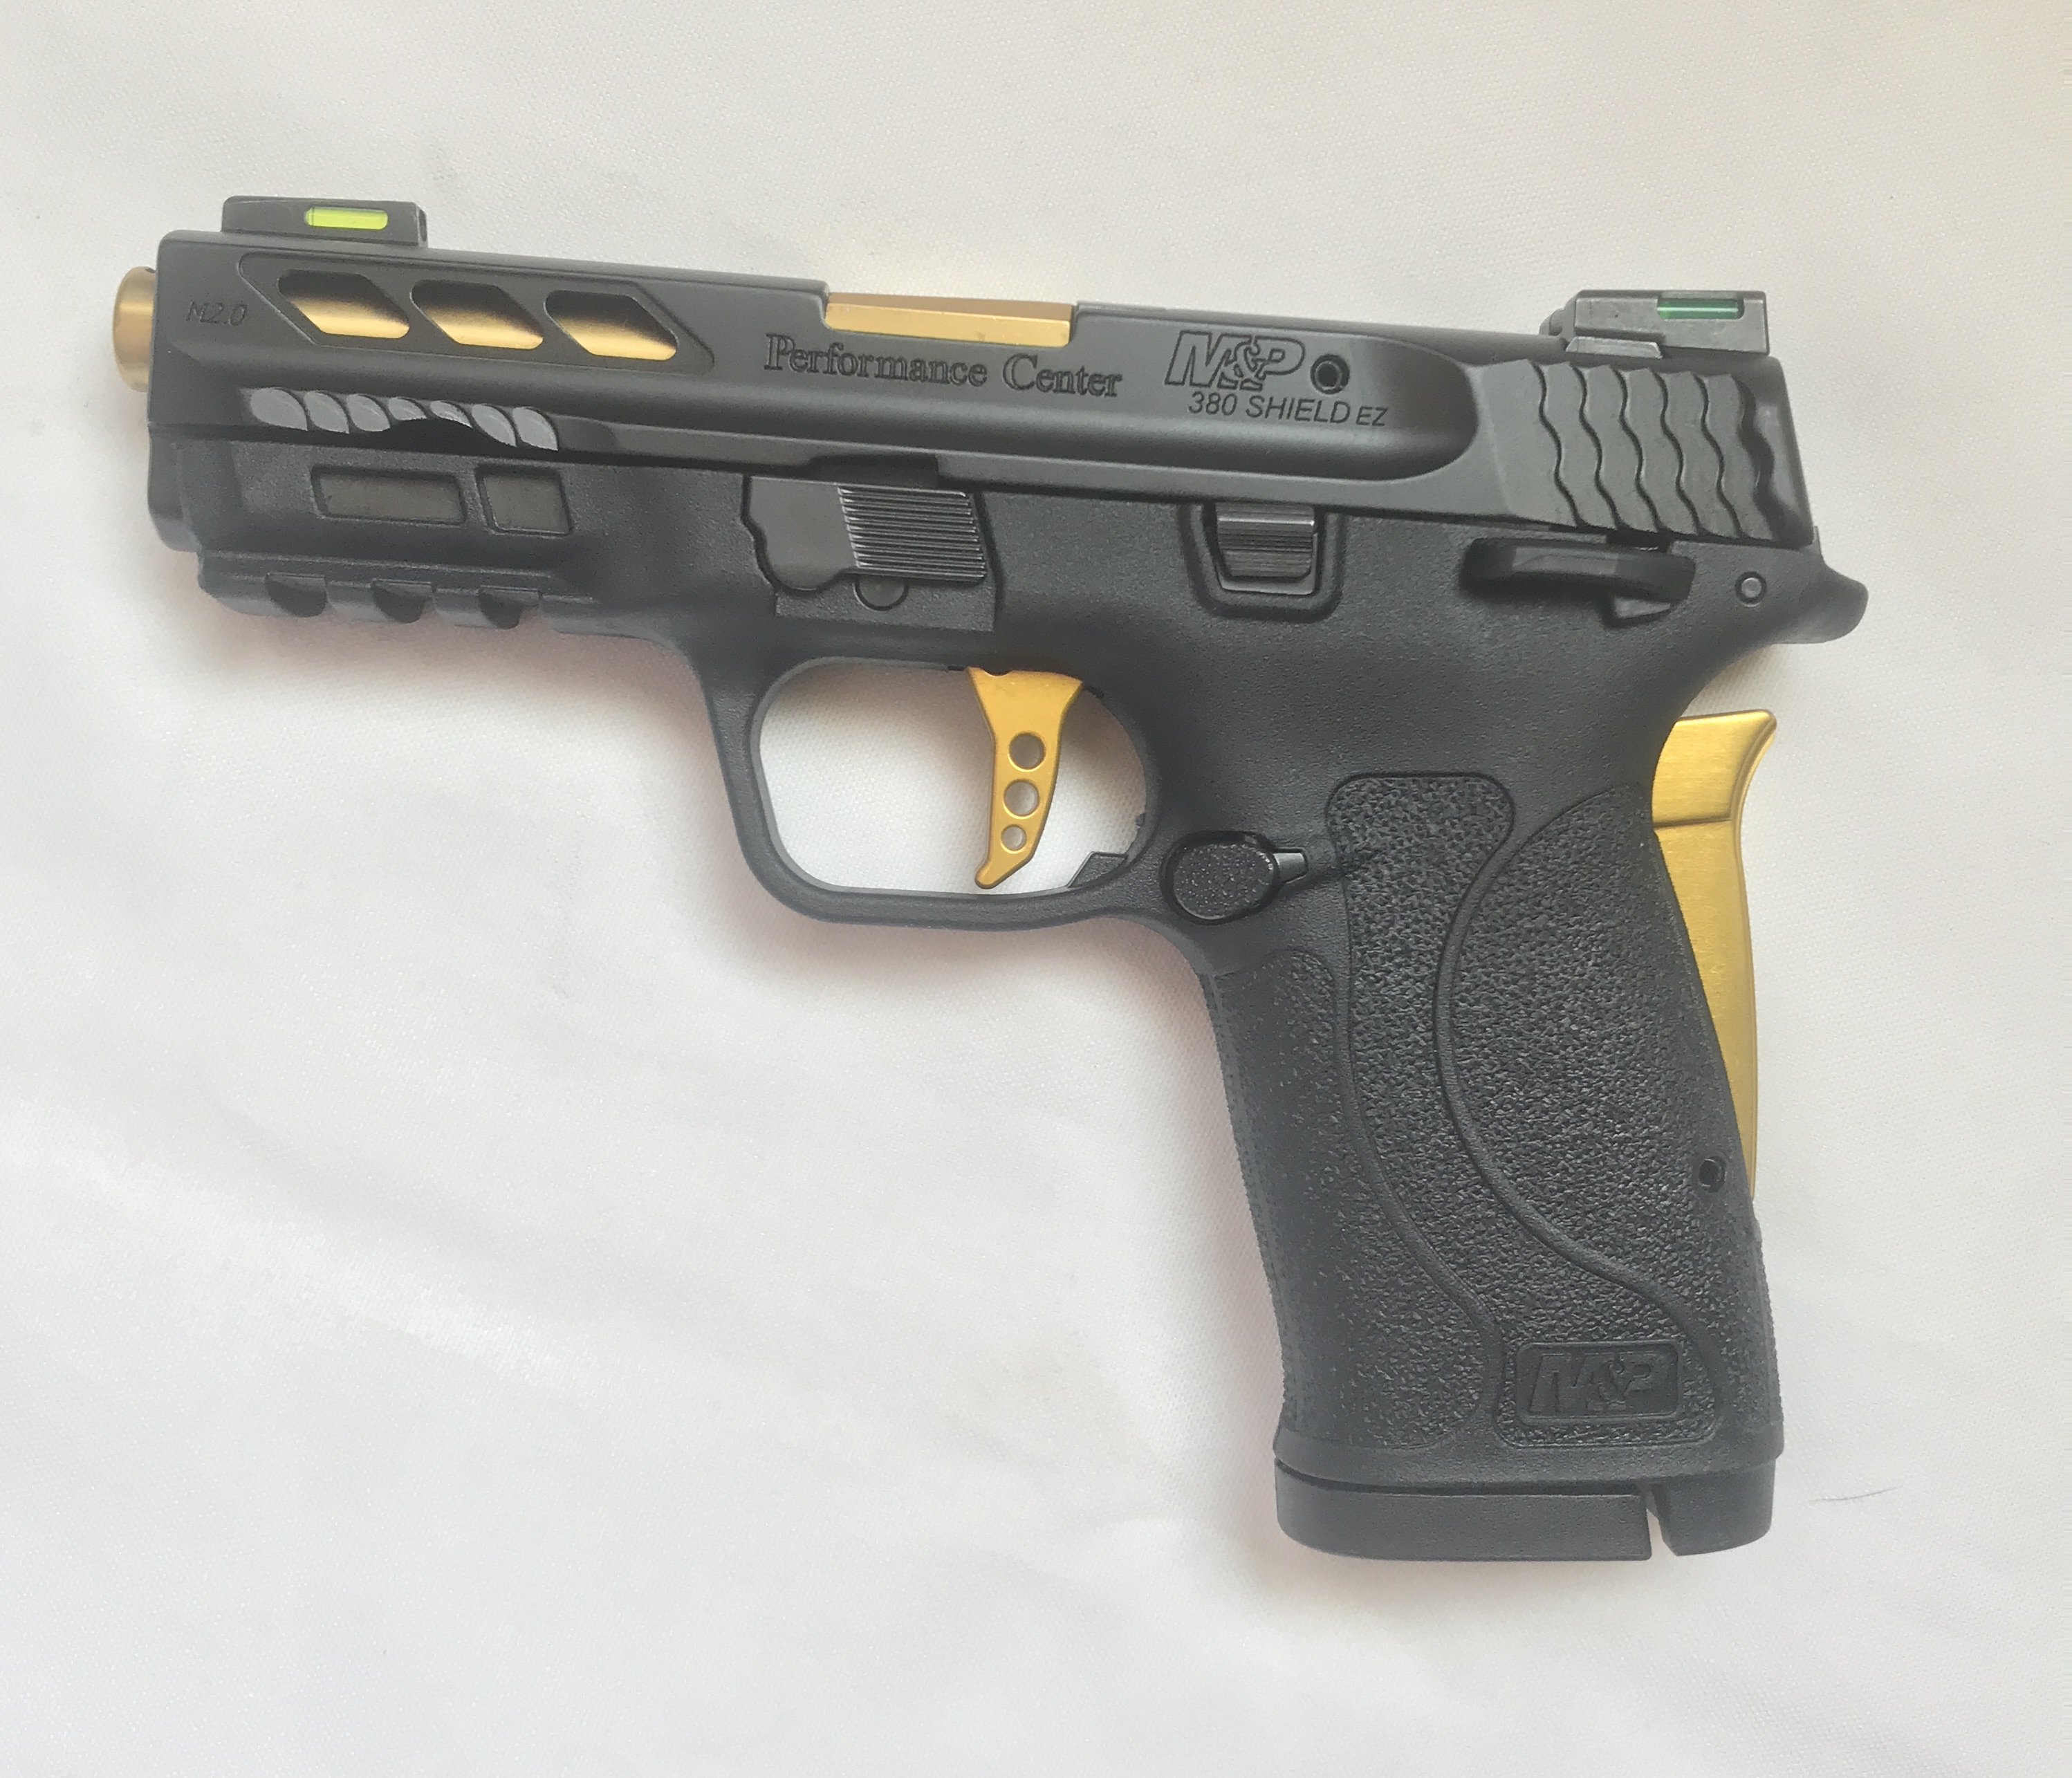 Smith & Wesson M&P380 SHIELD  M2.0 EZ - Performance Center - GOLD